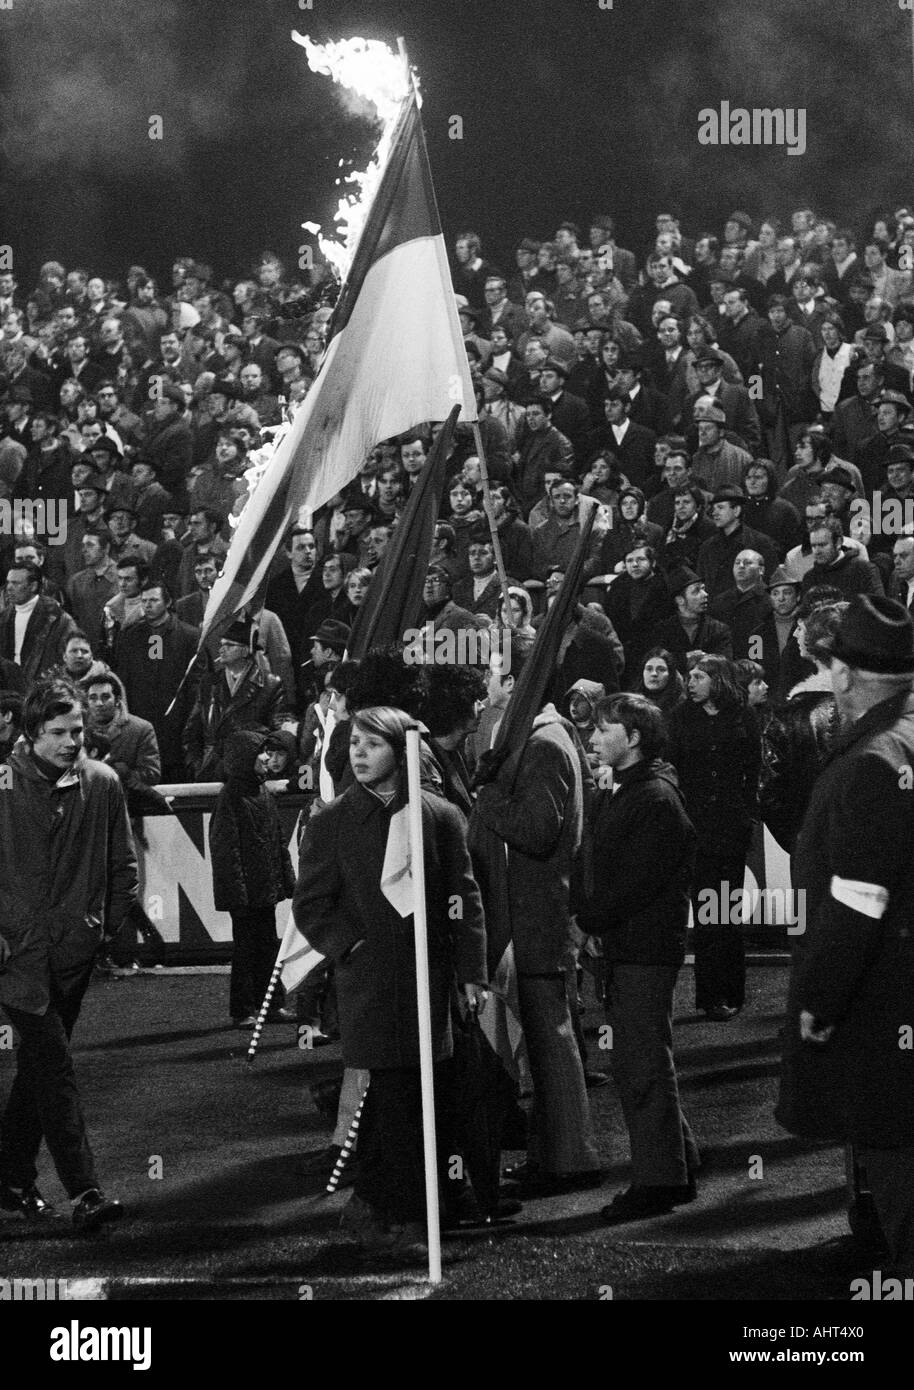 football, Bundesliga, 1970/1971, Niederrhein Stadium, Rot-Weiss Oberhausen versus Hanover 96 4:3, some minutes before the final whistle RWO football fans burn the club flags because the team was down - Stock Image